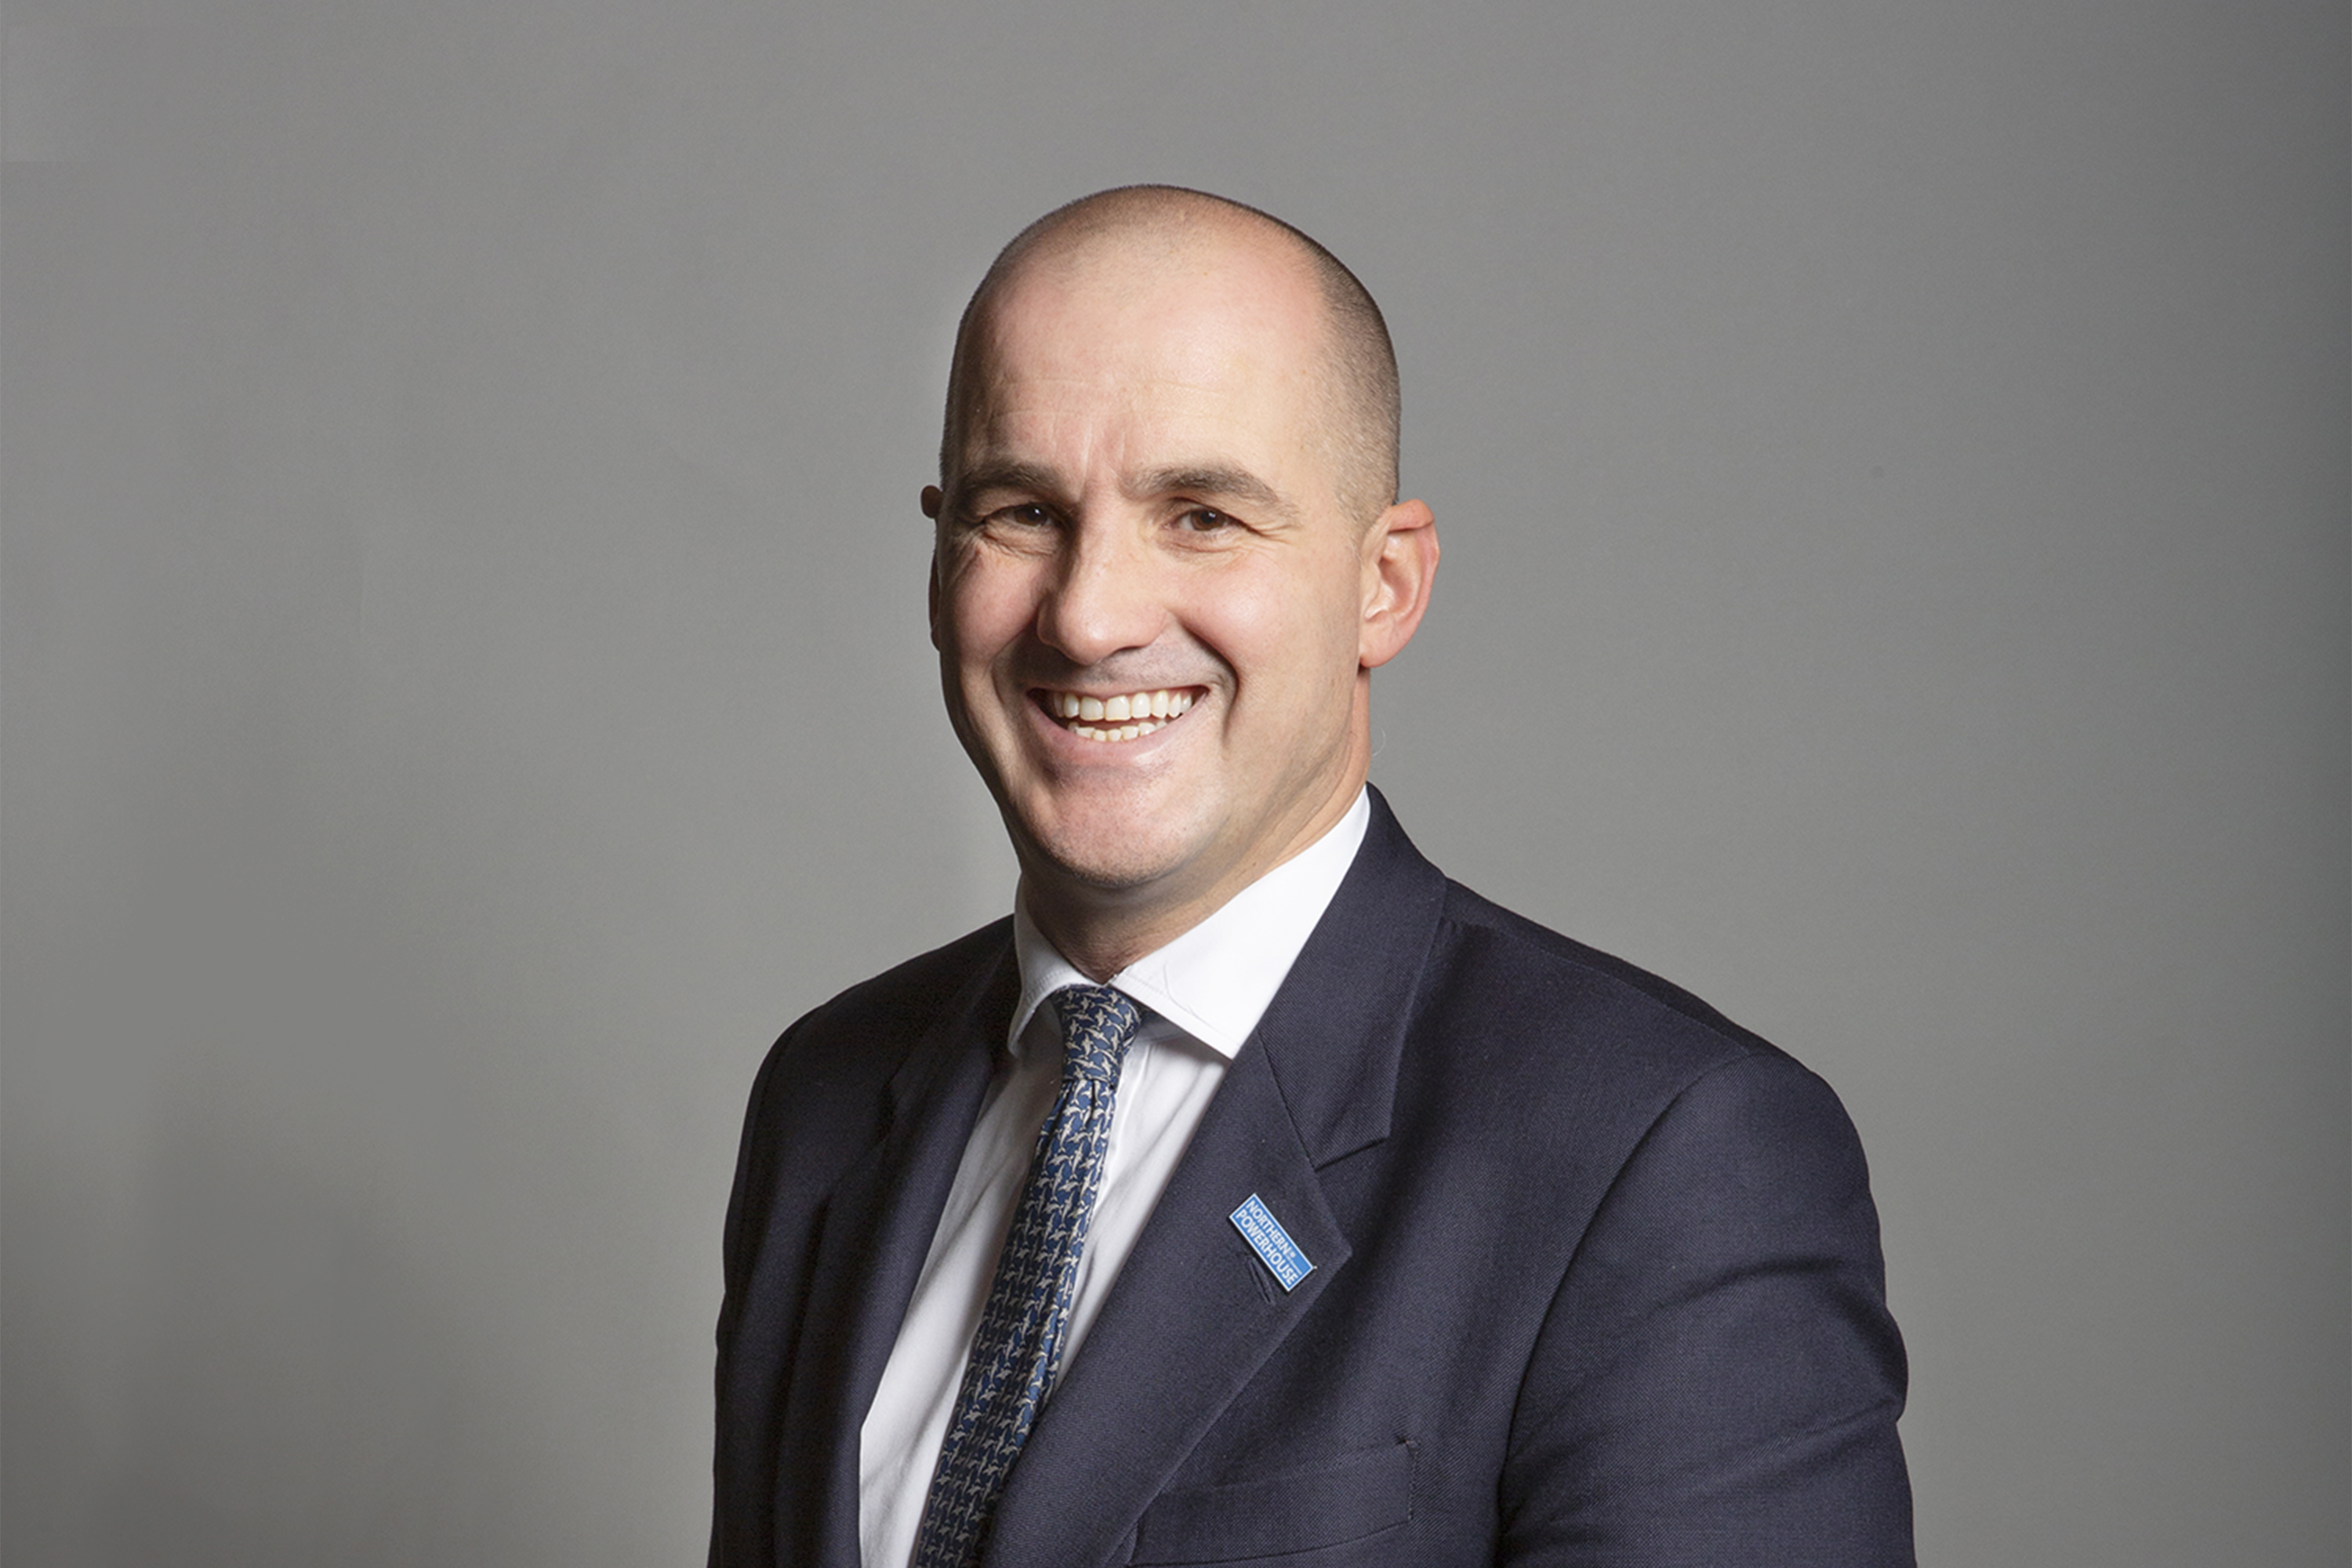 File:Official portrait of Rt Hon Jake Berry MP crop 1.jpg